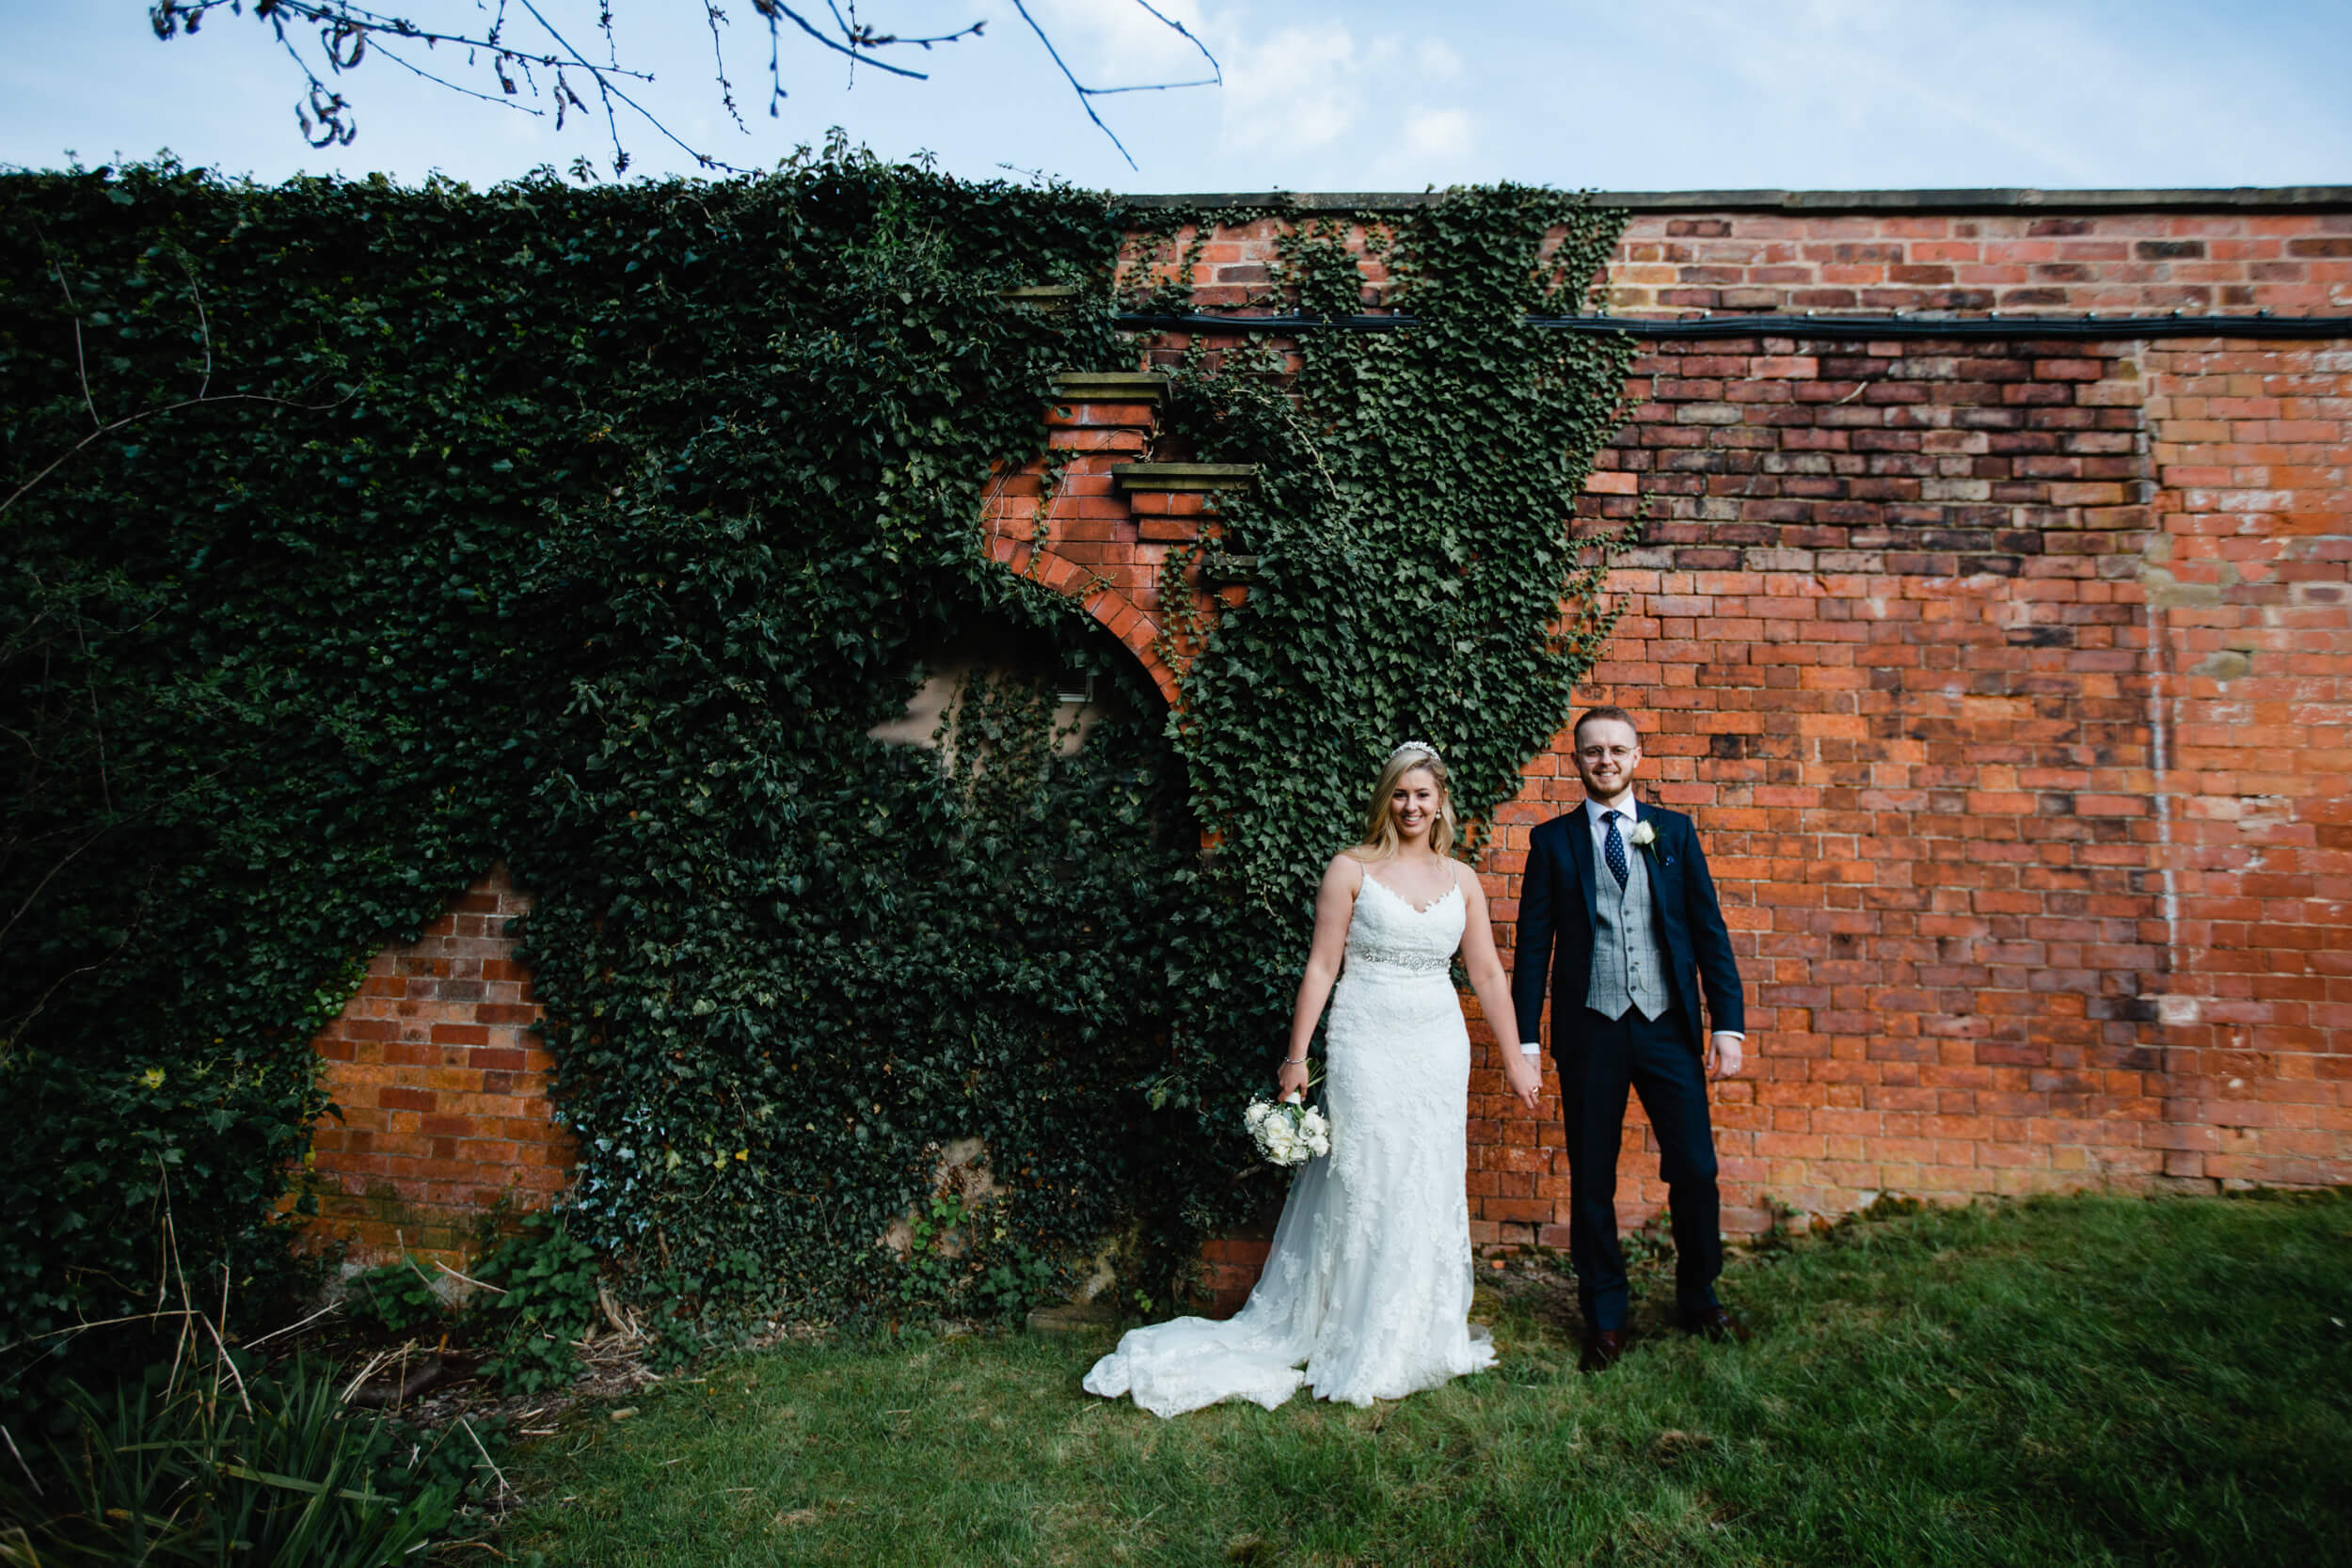 bride and groom holding hands against red brick ballpark wall